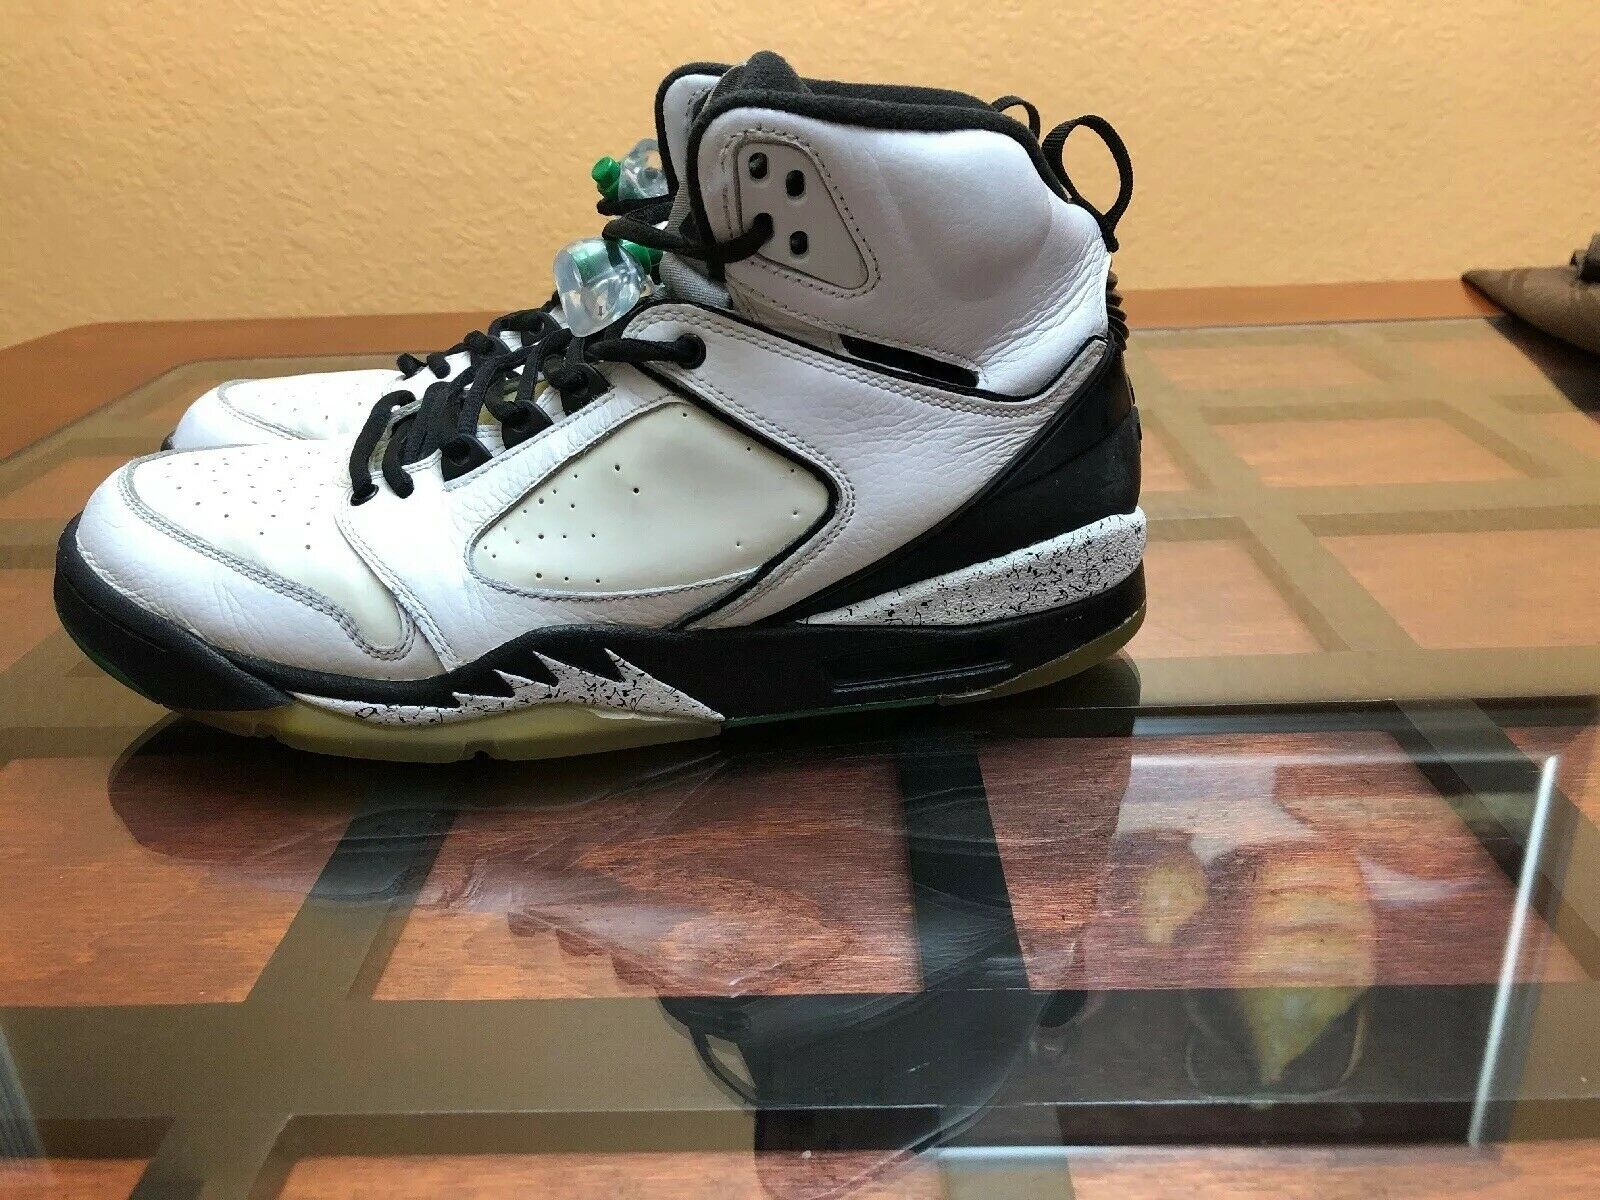 Nike Air JORDAN SIXTY PLUS V 5 RETRO WHITE GREEN BLACK Celtics 364806-131 Sz 10